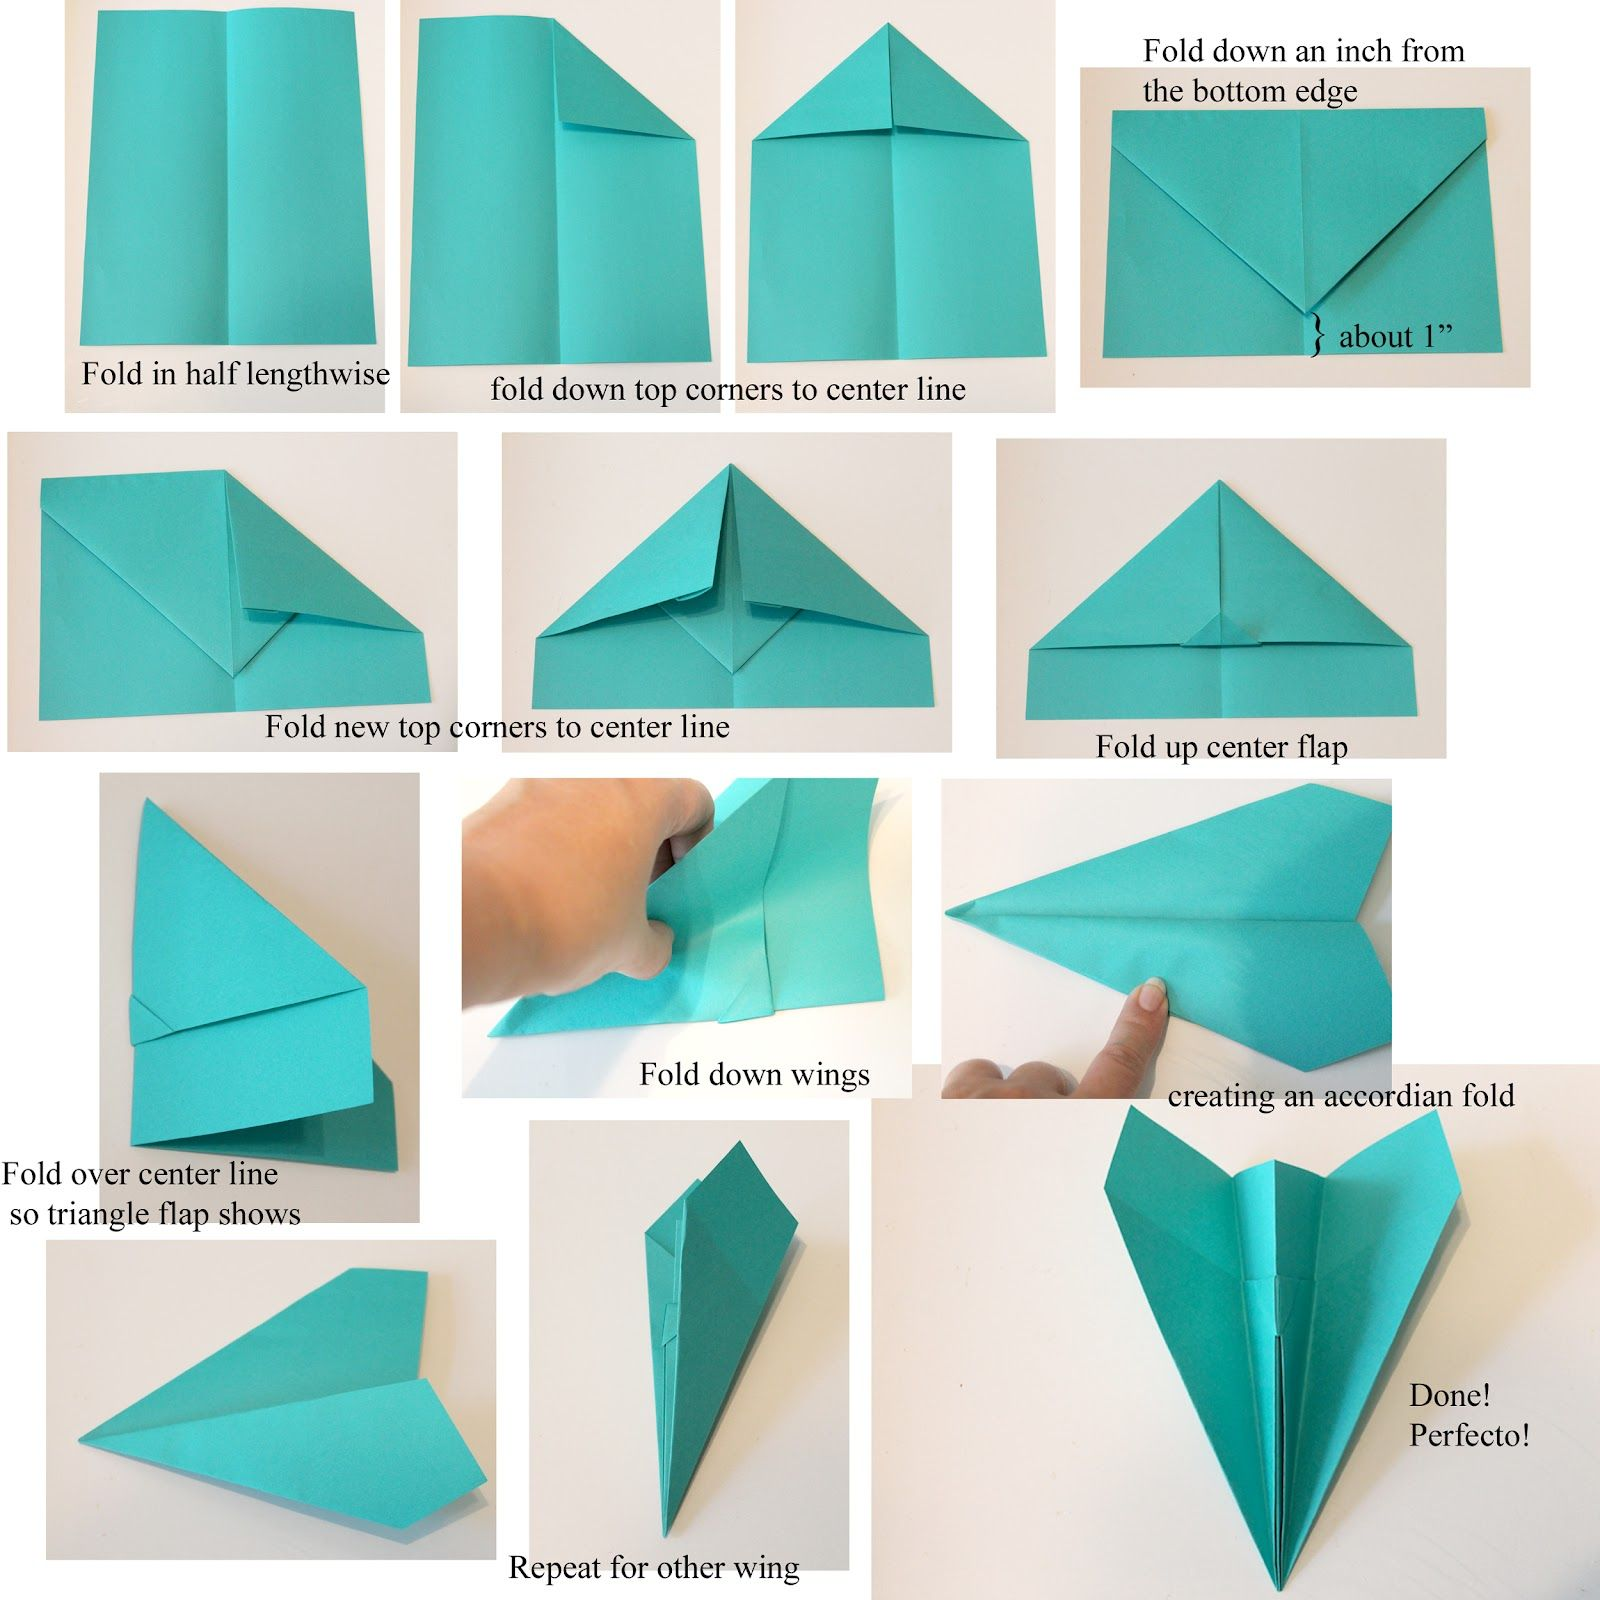 Paper Airplane Instructions Full Folding Diagram 1 Of 3 Scottish Terrier Dog Money Origami Tutorial With Astrobright Colored